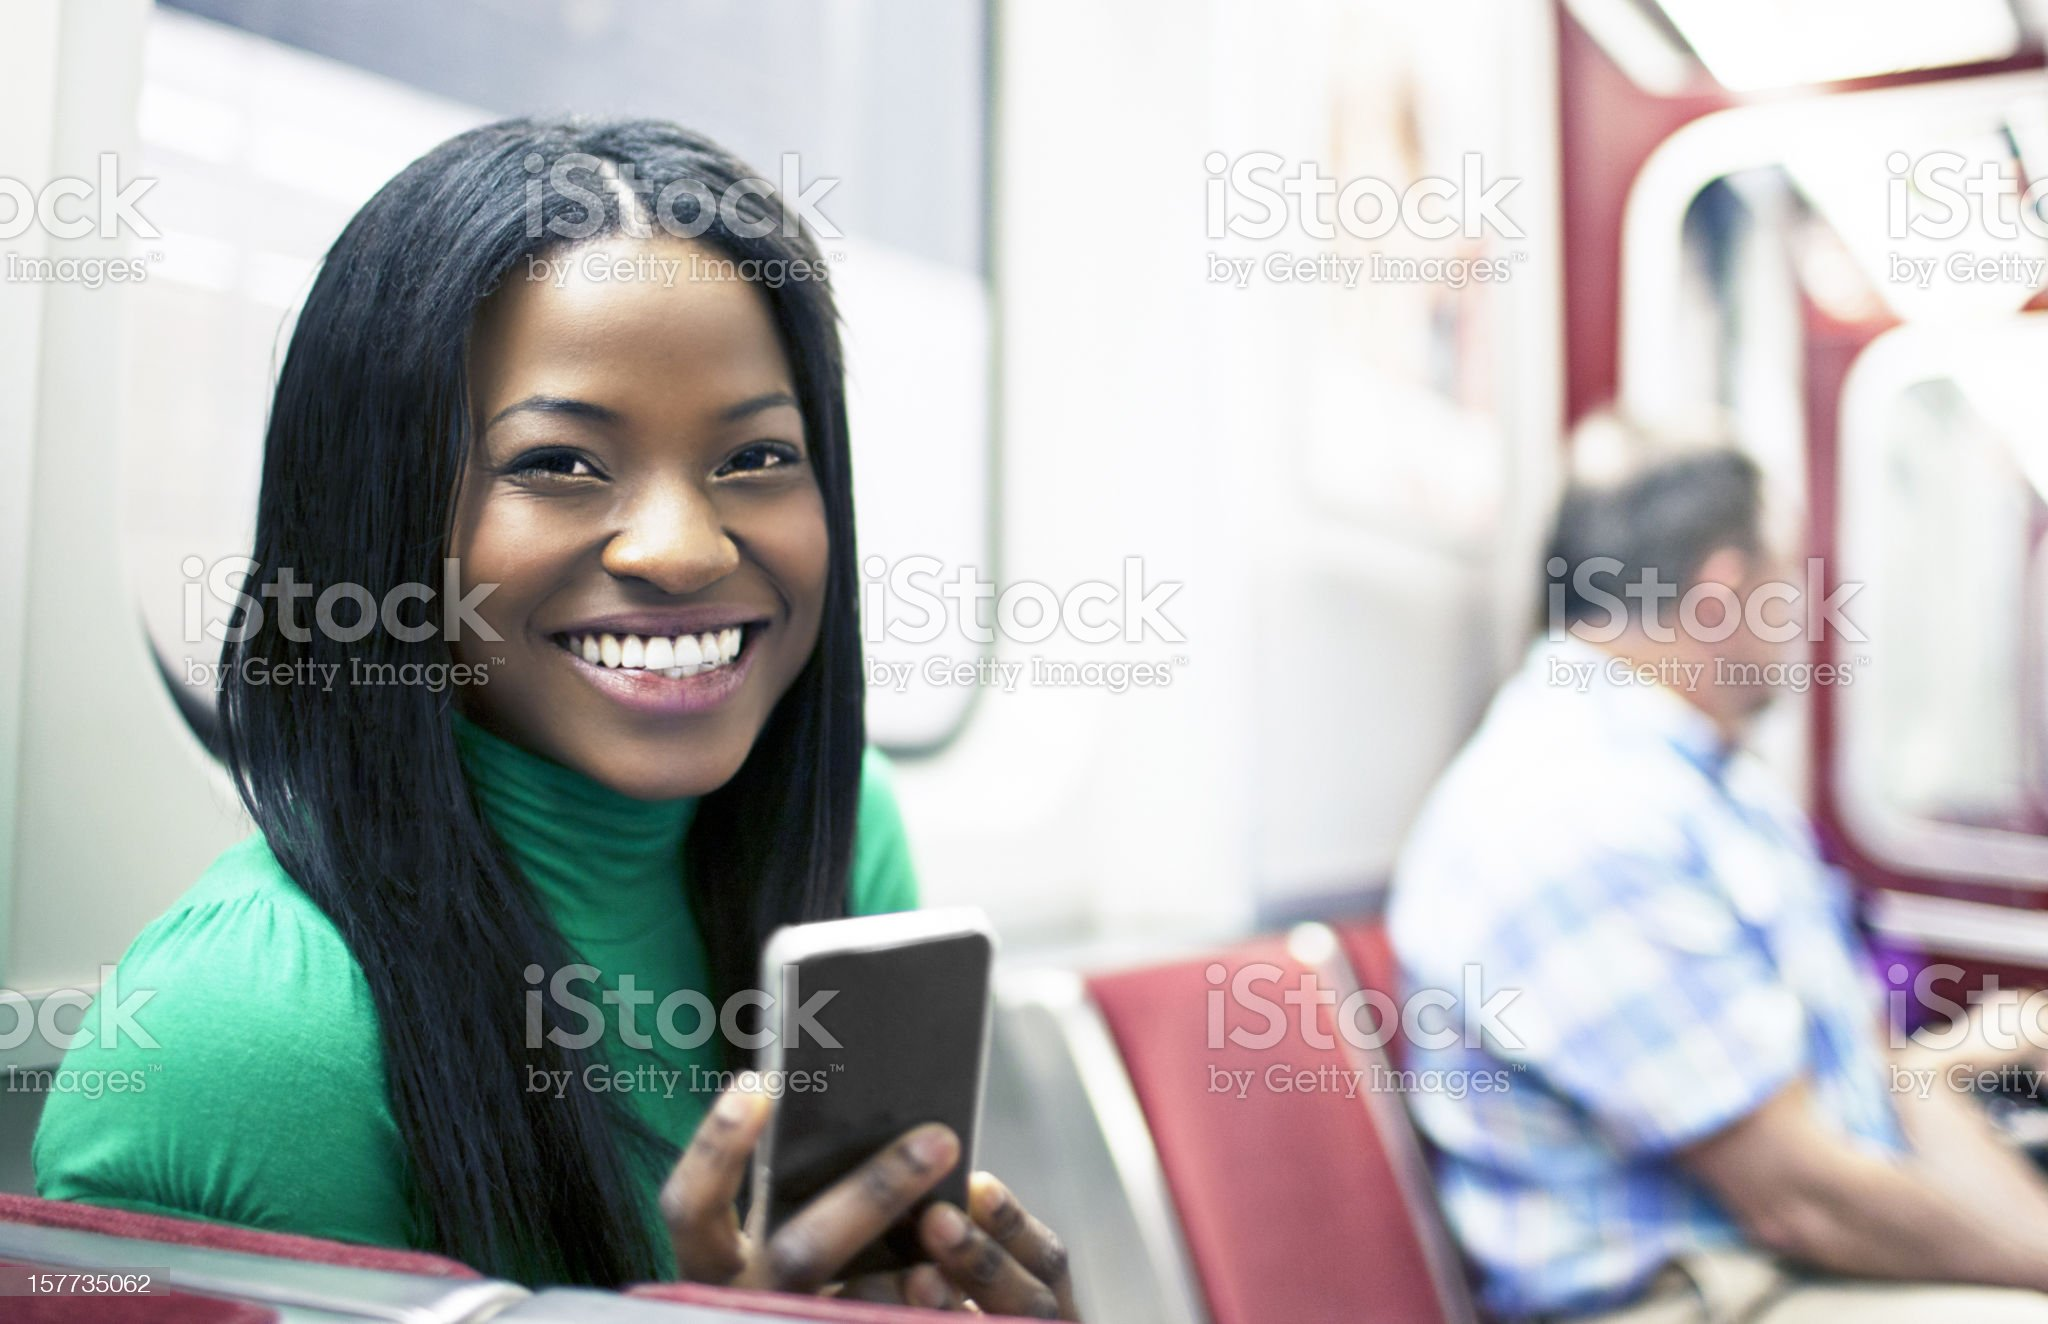 Happy in the train royalty-free stock photo